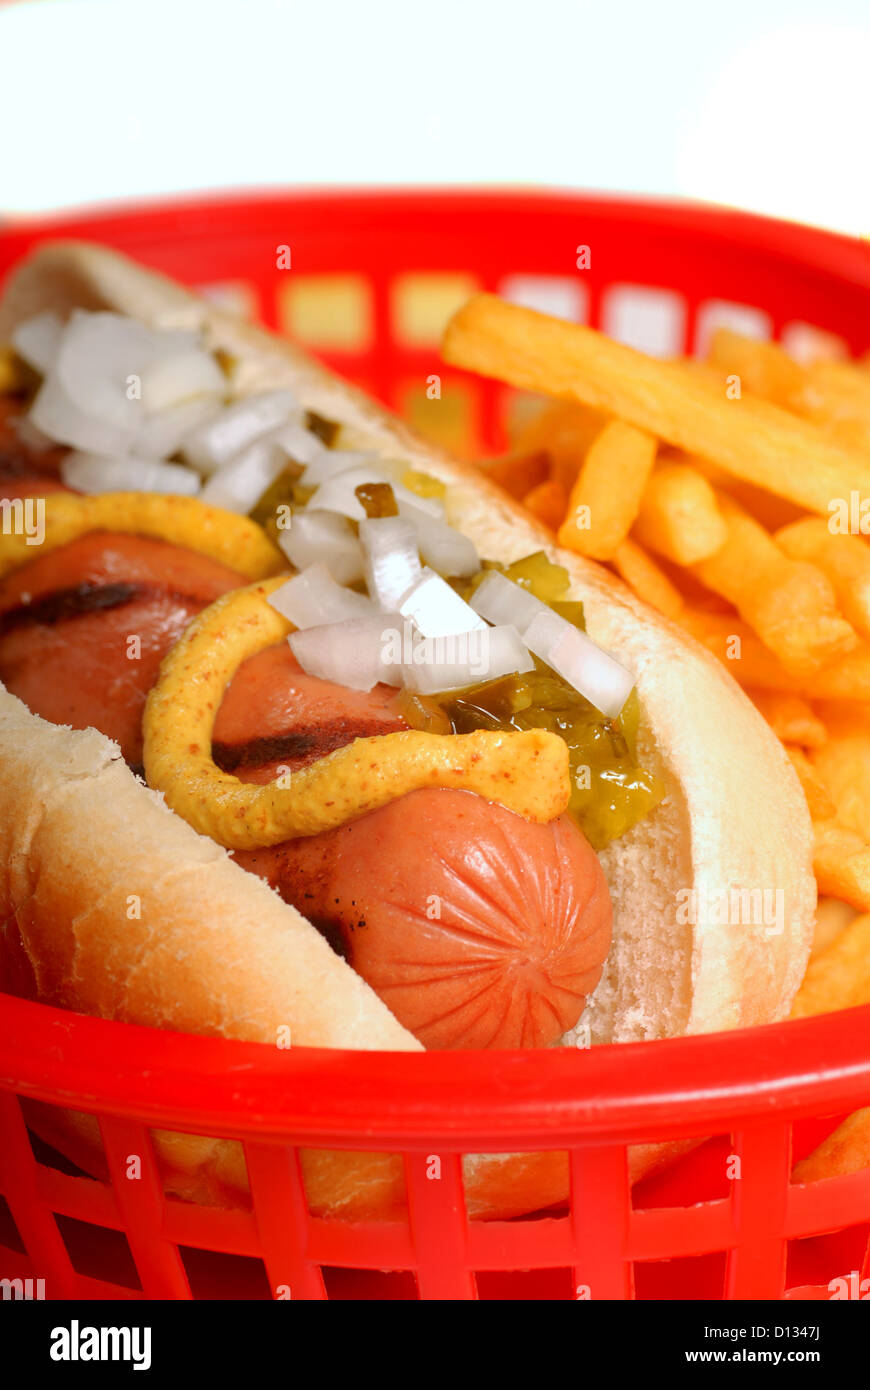 Freshly grilled hot dog in a basket with french fries Stock Photo